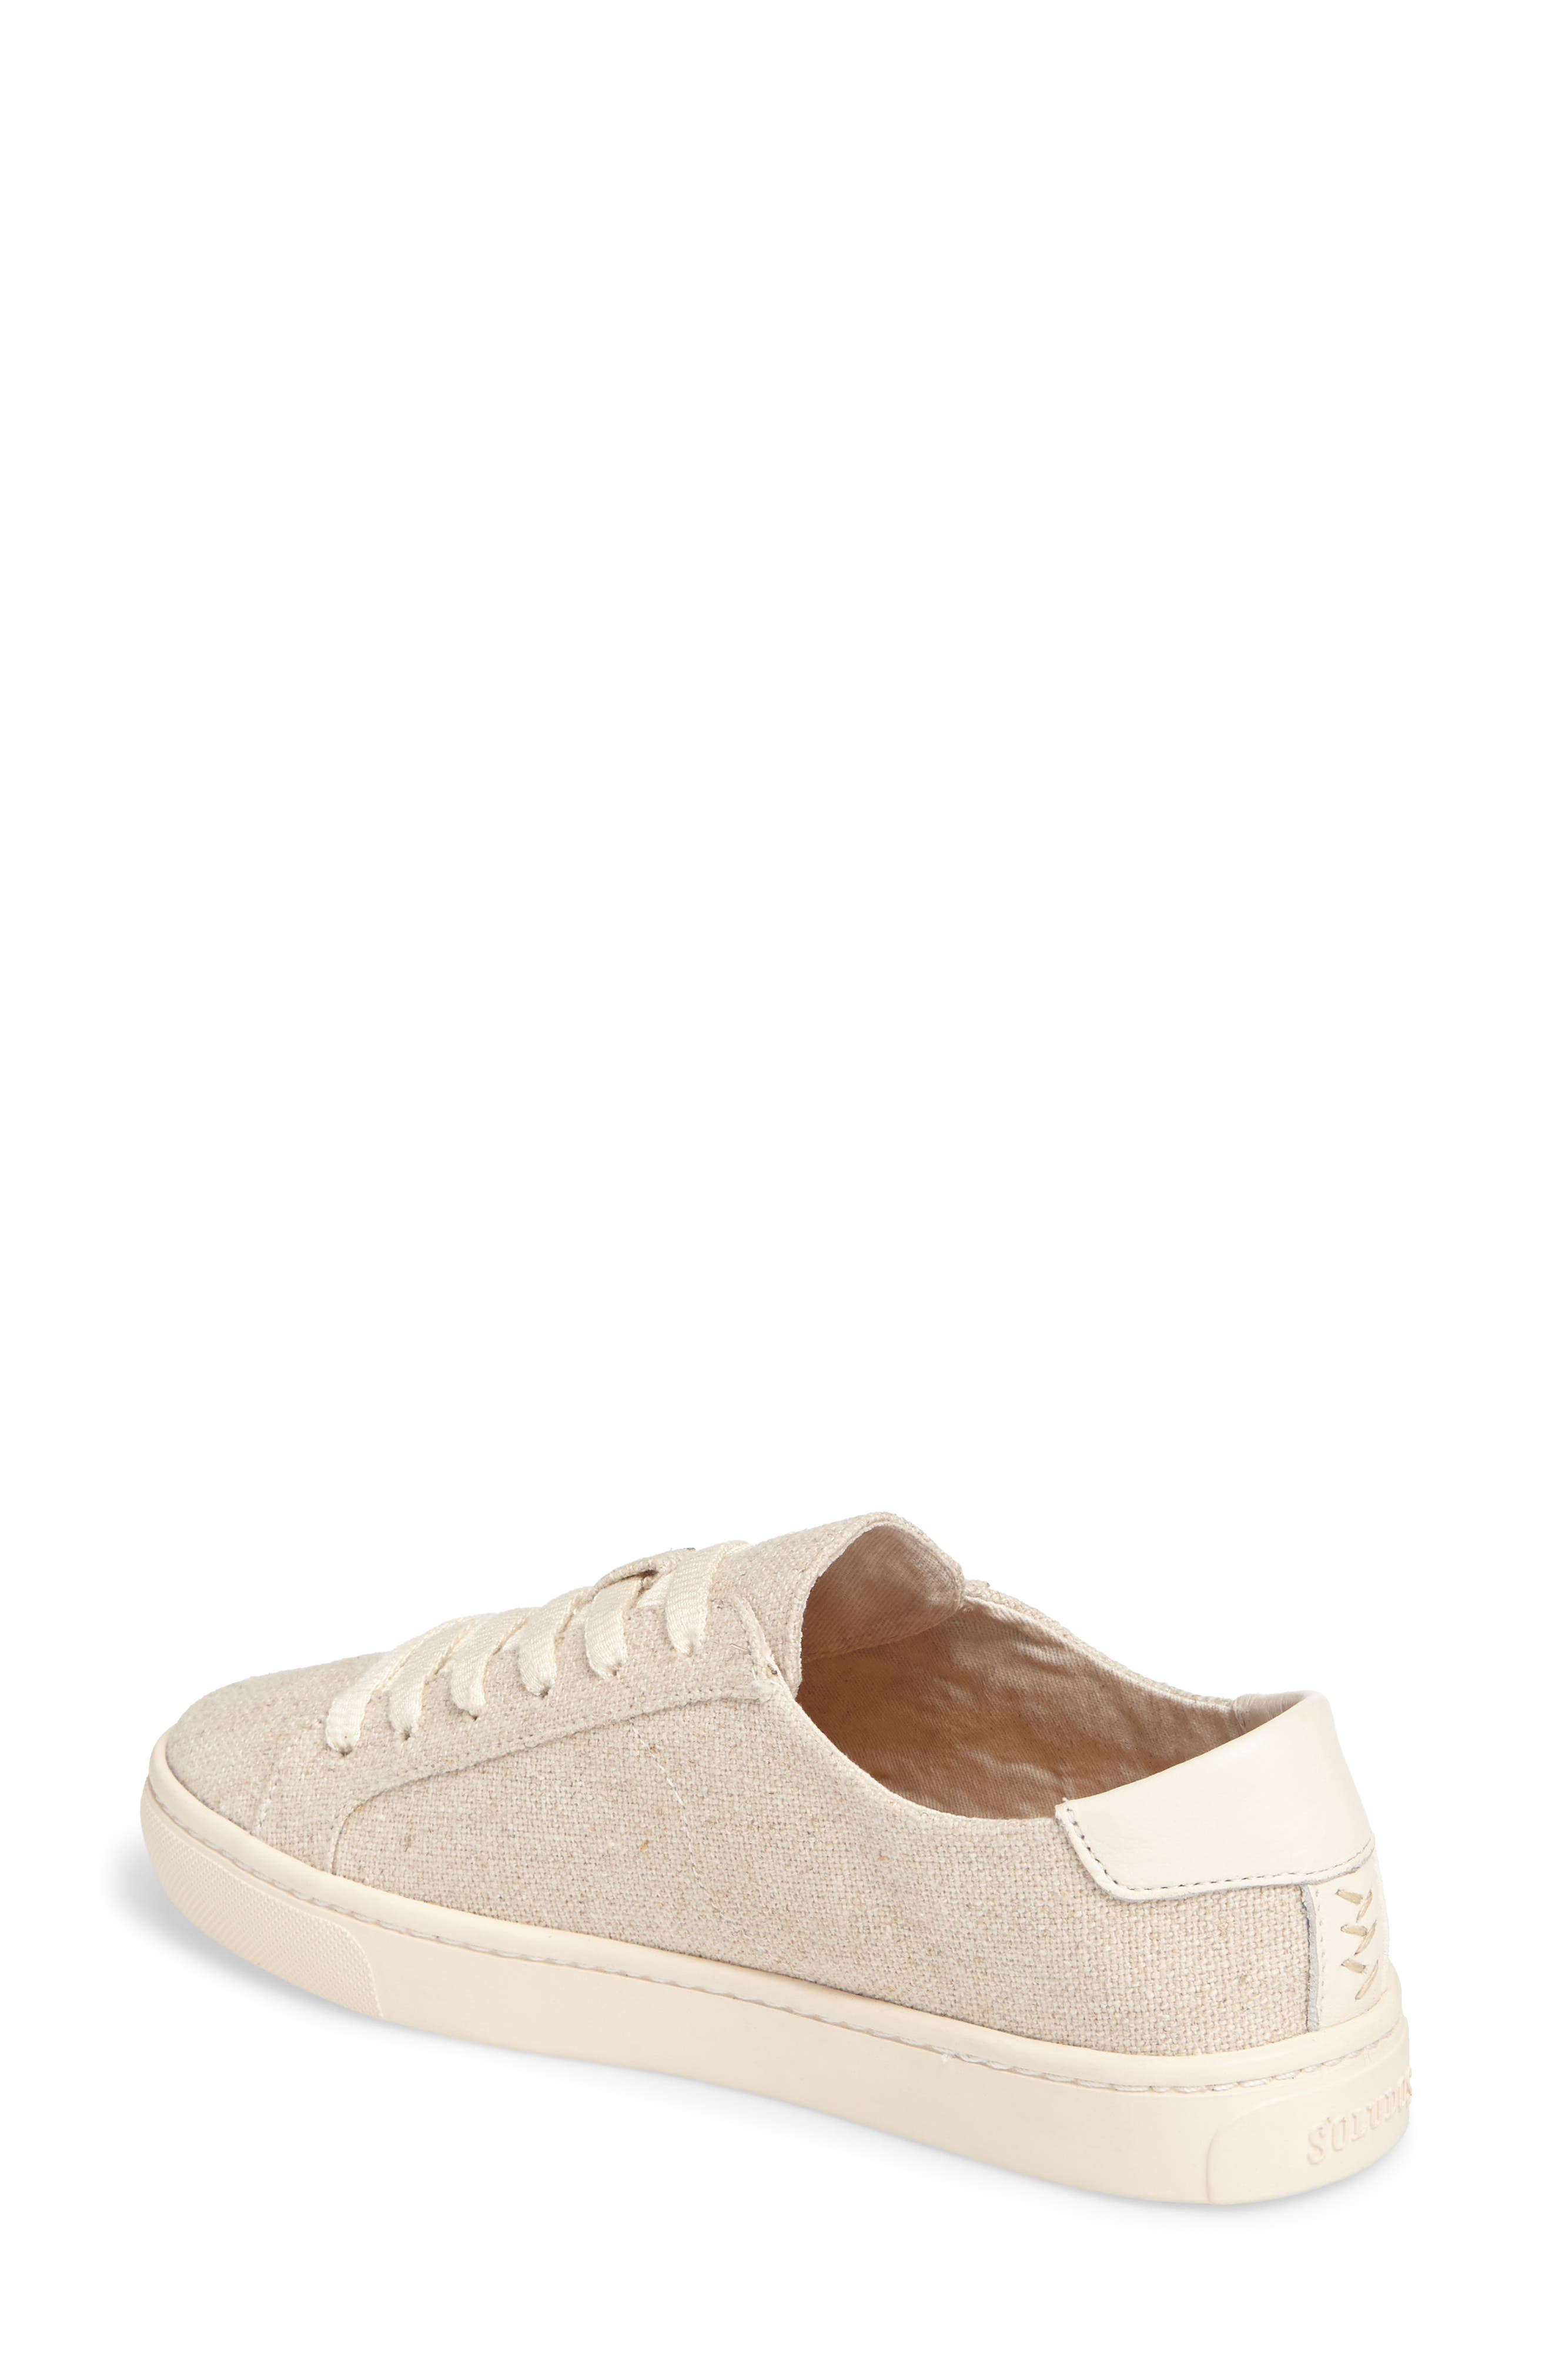 Otomi Sneaker,                             Alternate thumbnail 2, color,                             Sand Black